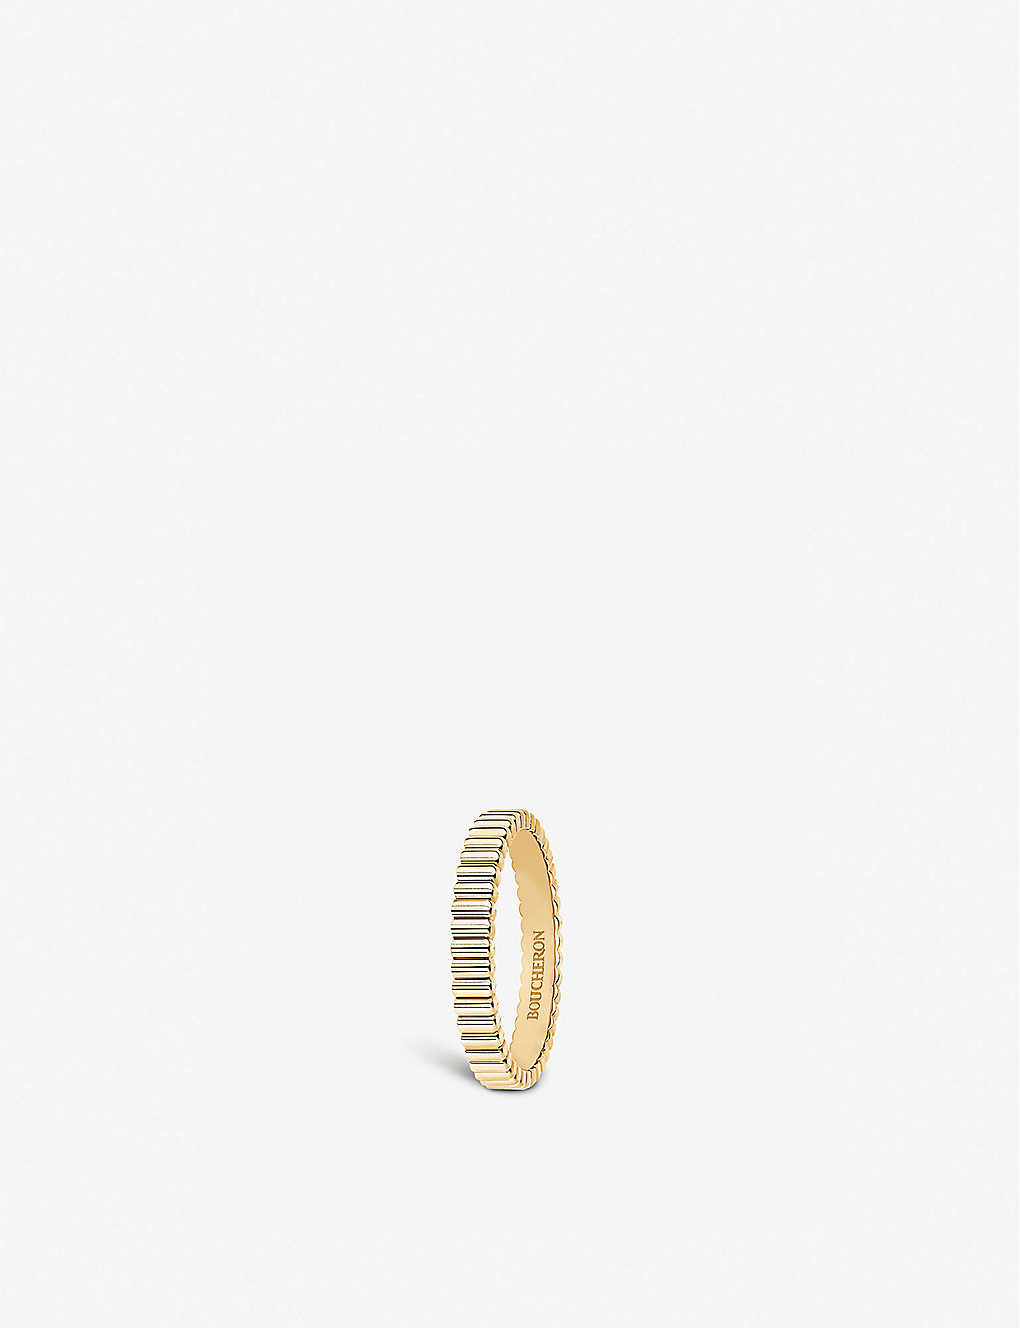 BOUCHERON: Quatre Grosgrain 18ct yellow gold wedding band